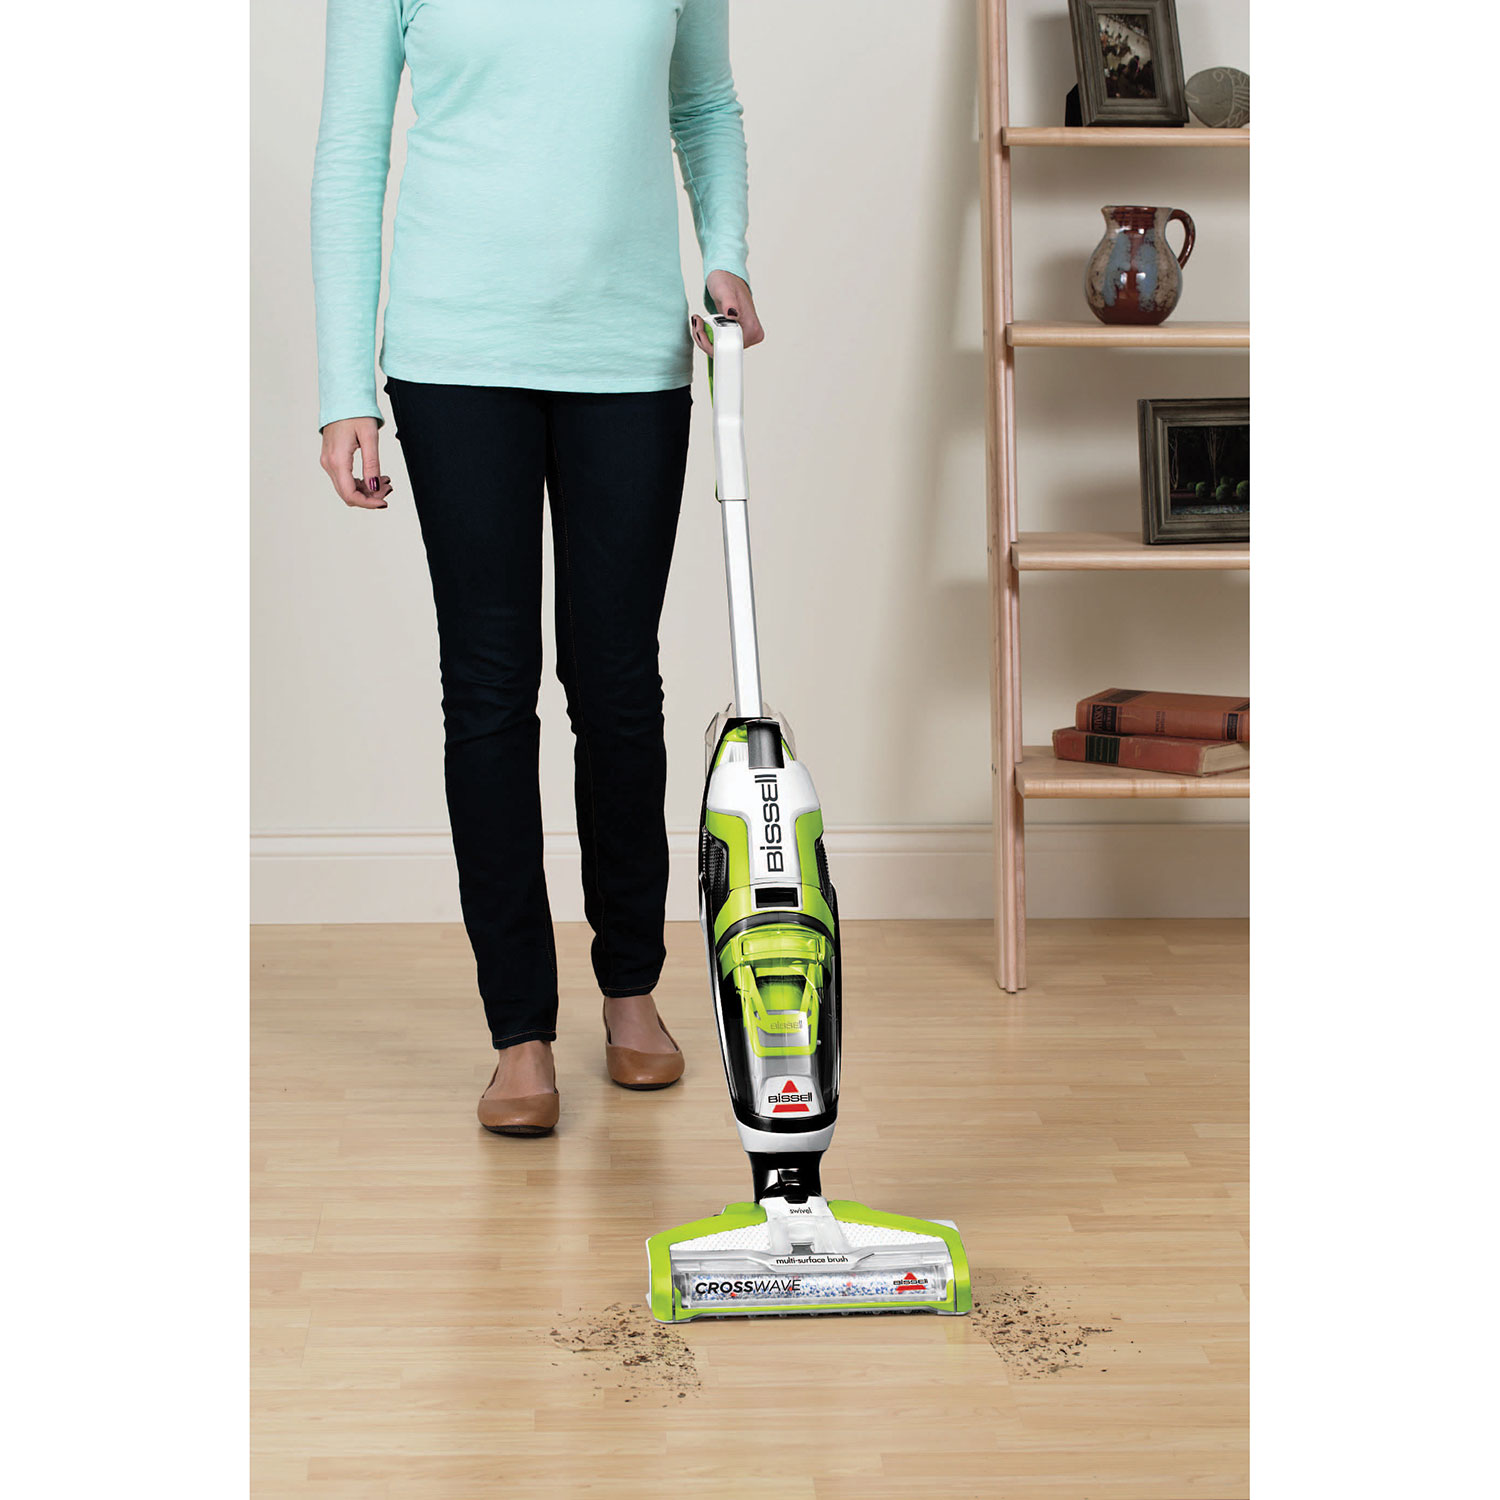 Bissell CrossWave Steam Vacuum/Cleaner   Molded Cha Cha Lime : Floor  Steamers U0026 Cleaners   Best Buy Canada